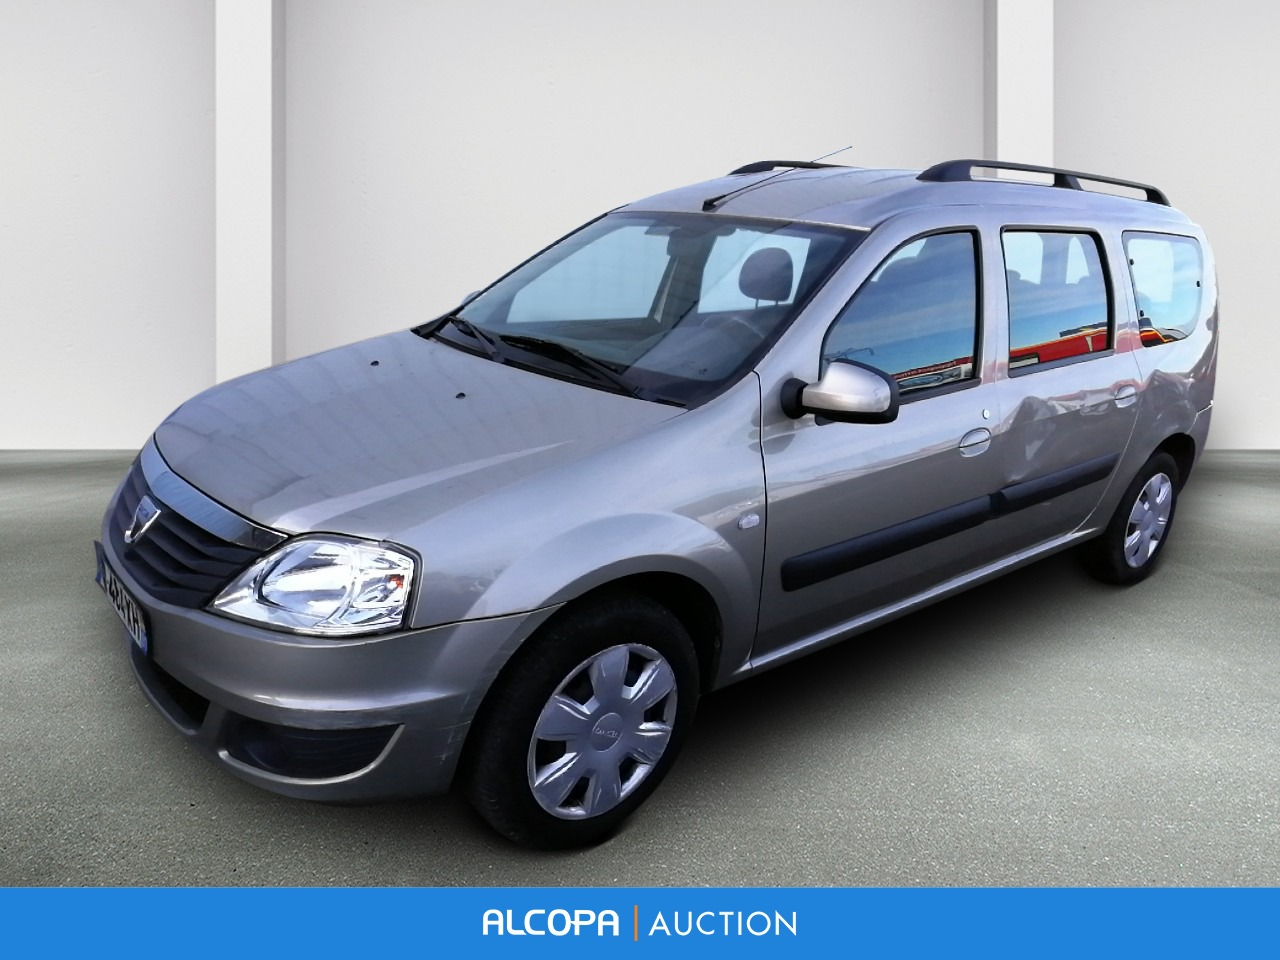 dacia logan mcv logan mcv dci 90 eco2 7 places black line 2 euro 5 alcopa auction